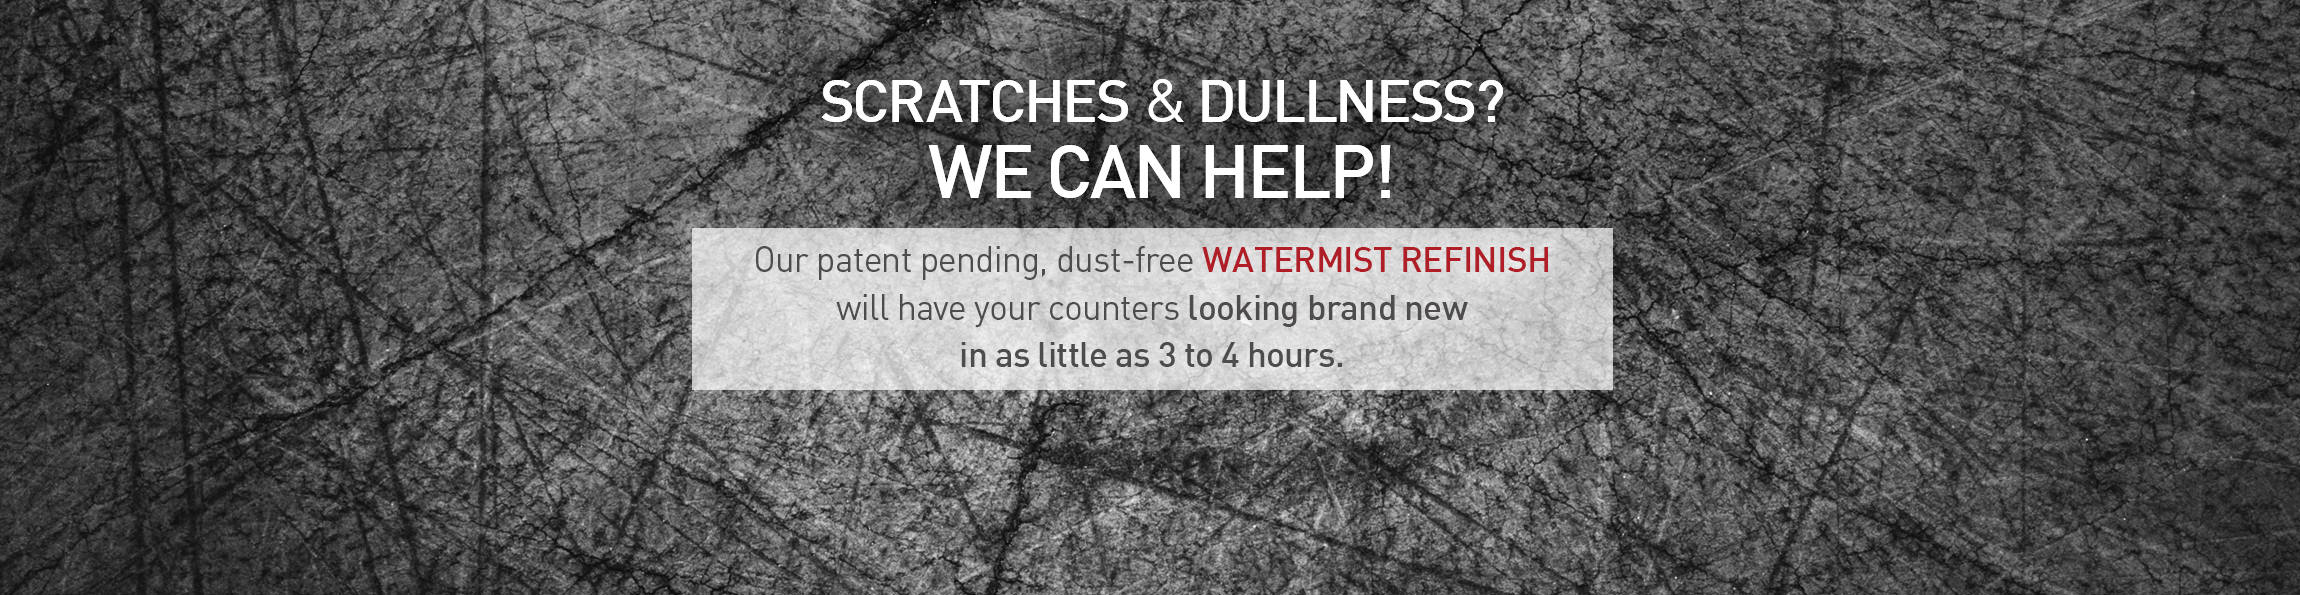 Charming Our Watermist Refinish Will Have Your Counters Looking New In 3 4 Hours!